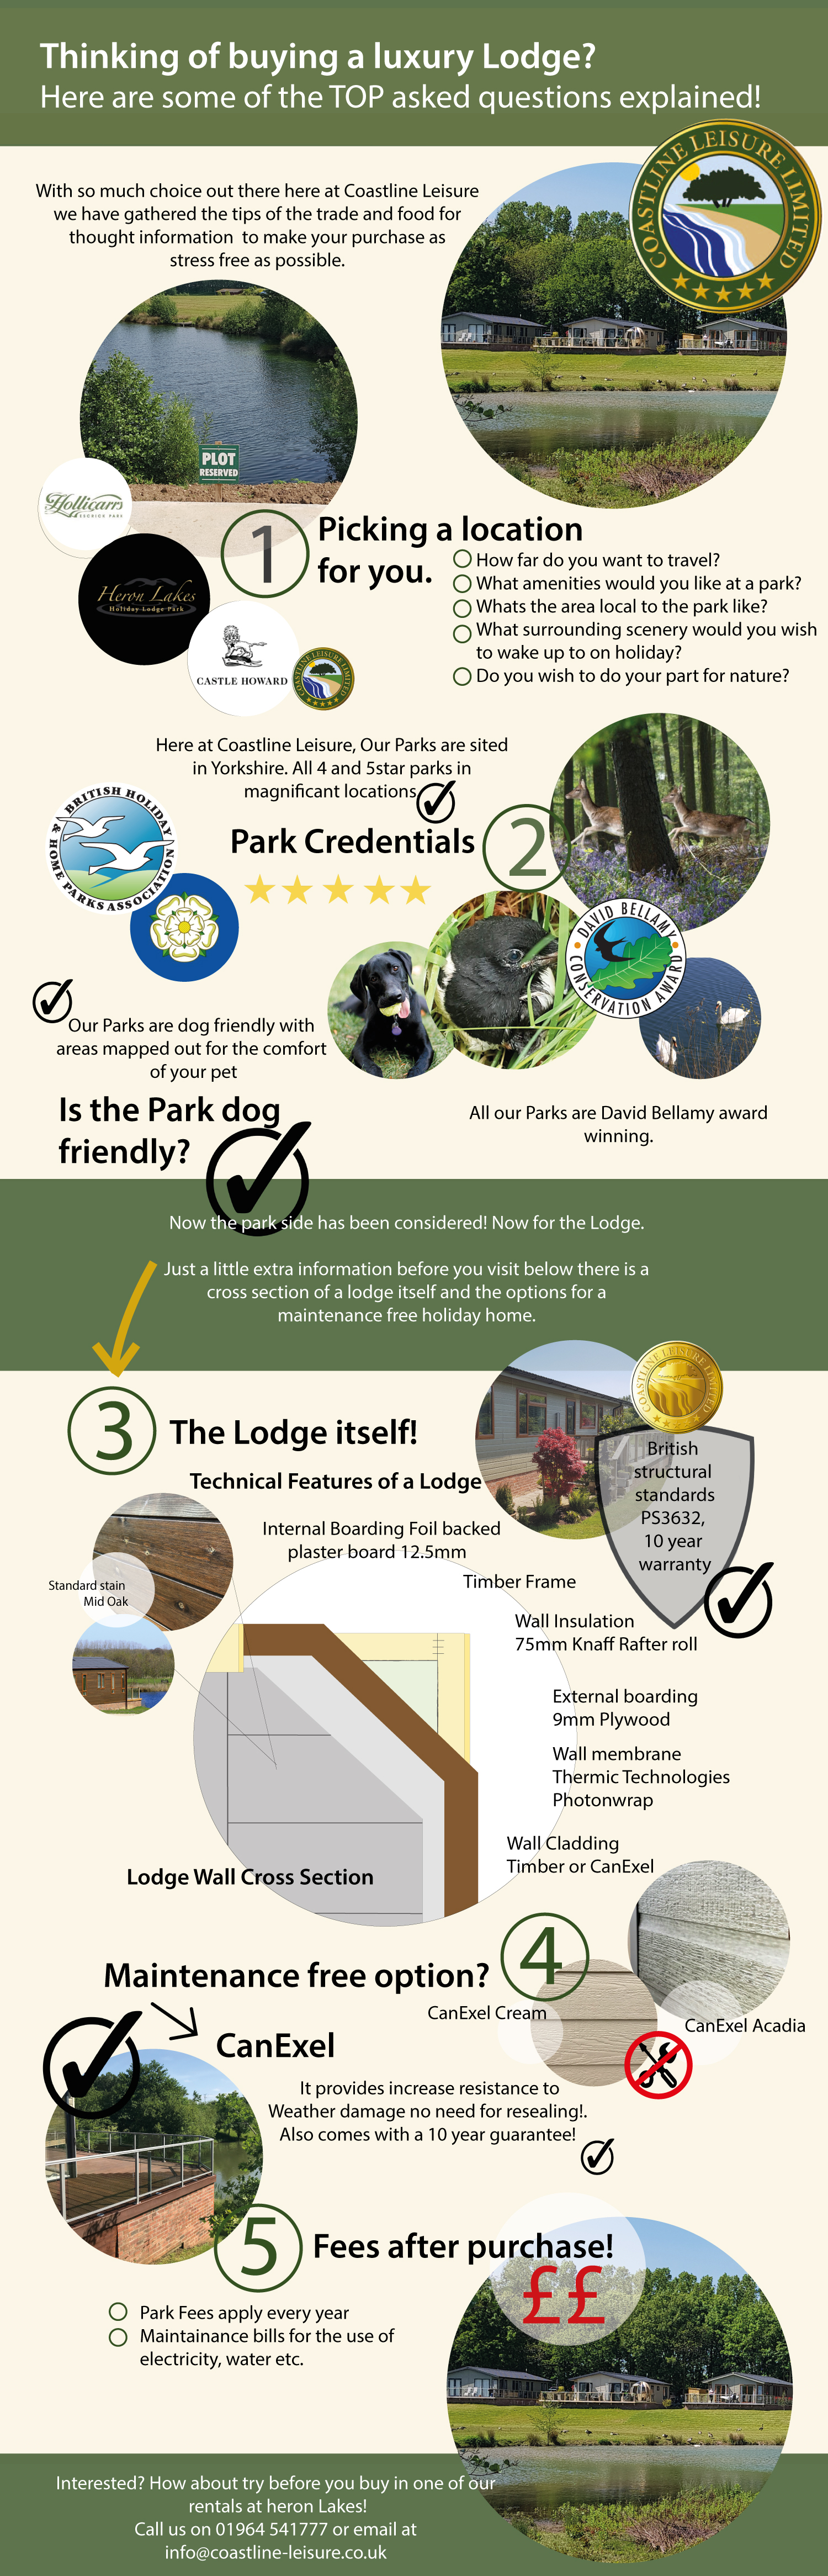 Considering purchasing a brand new lodge? An Infographic showing the top tips for buying a luxury lodge.